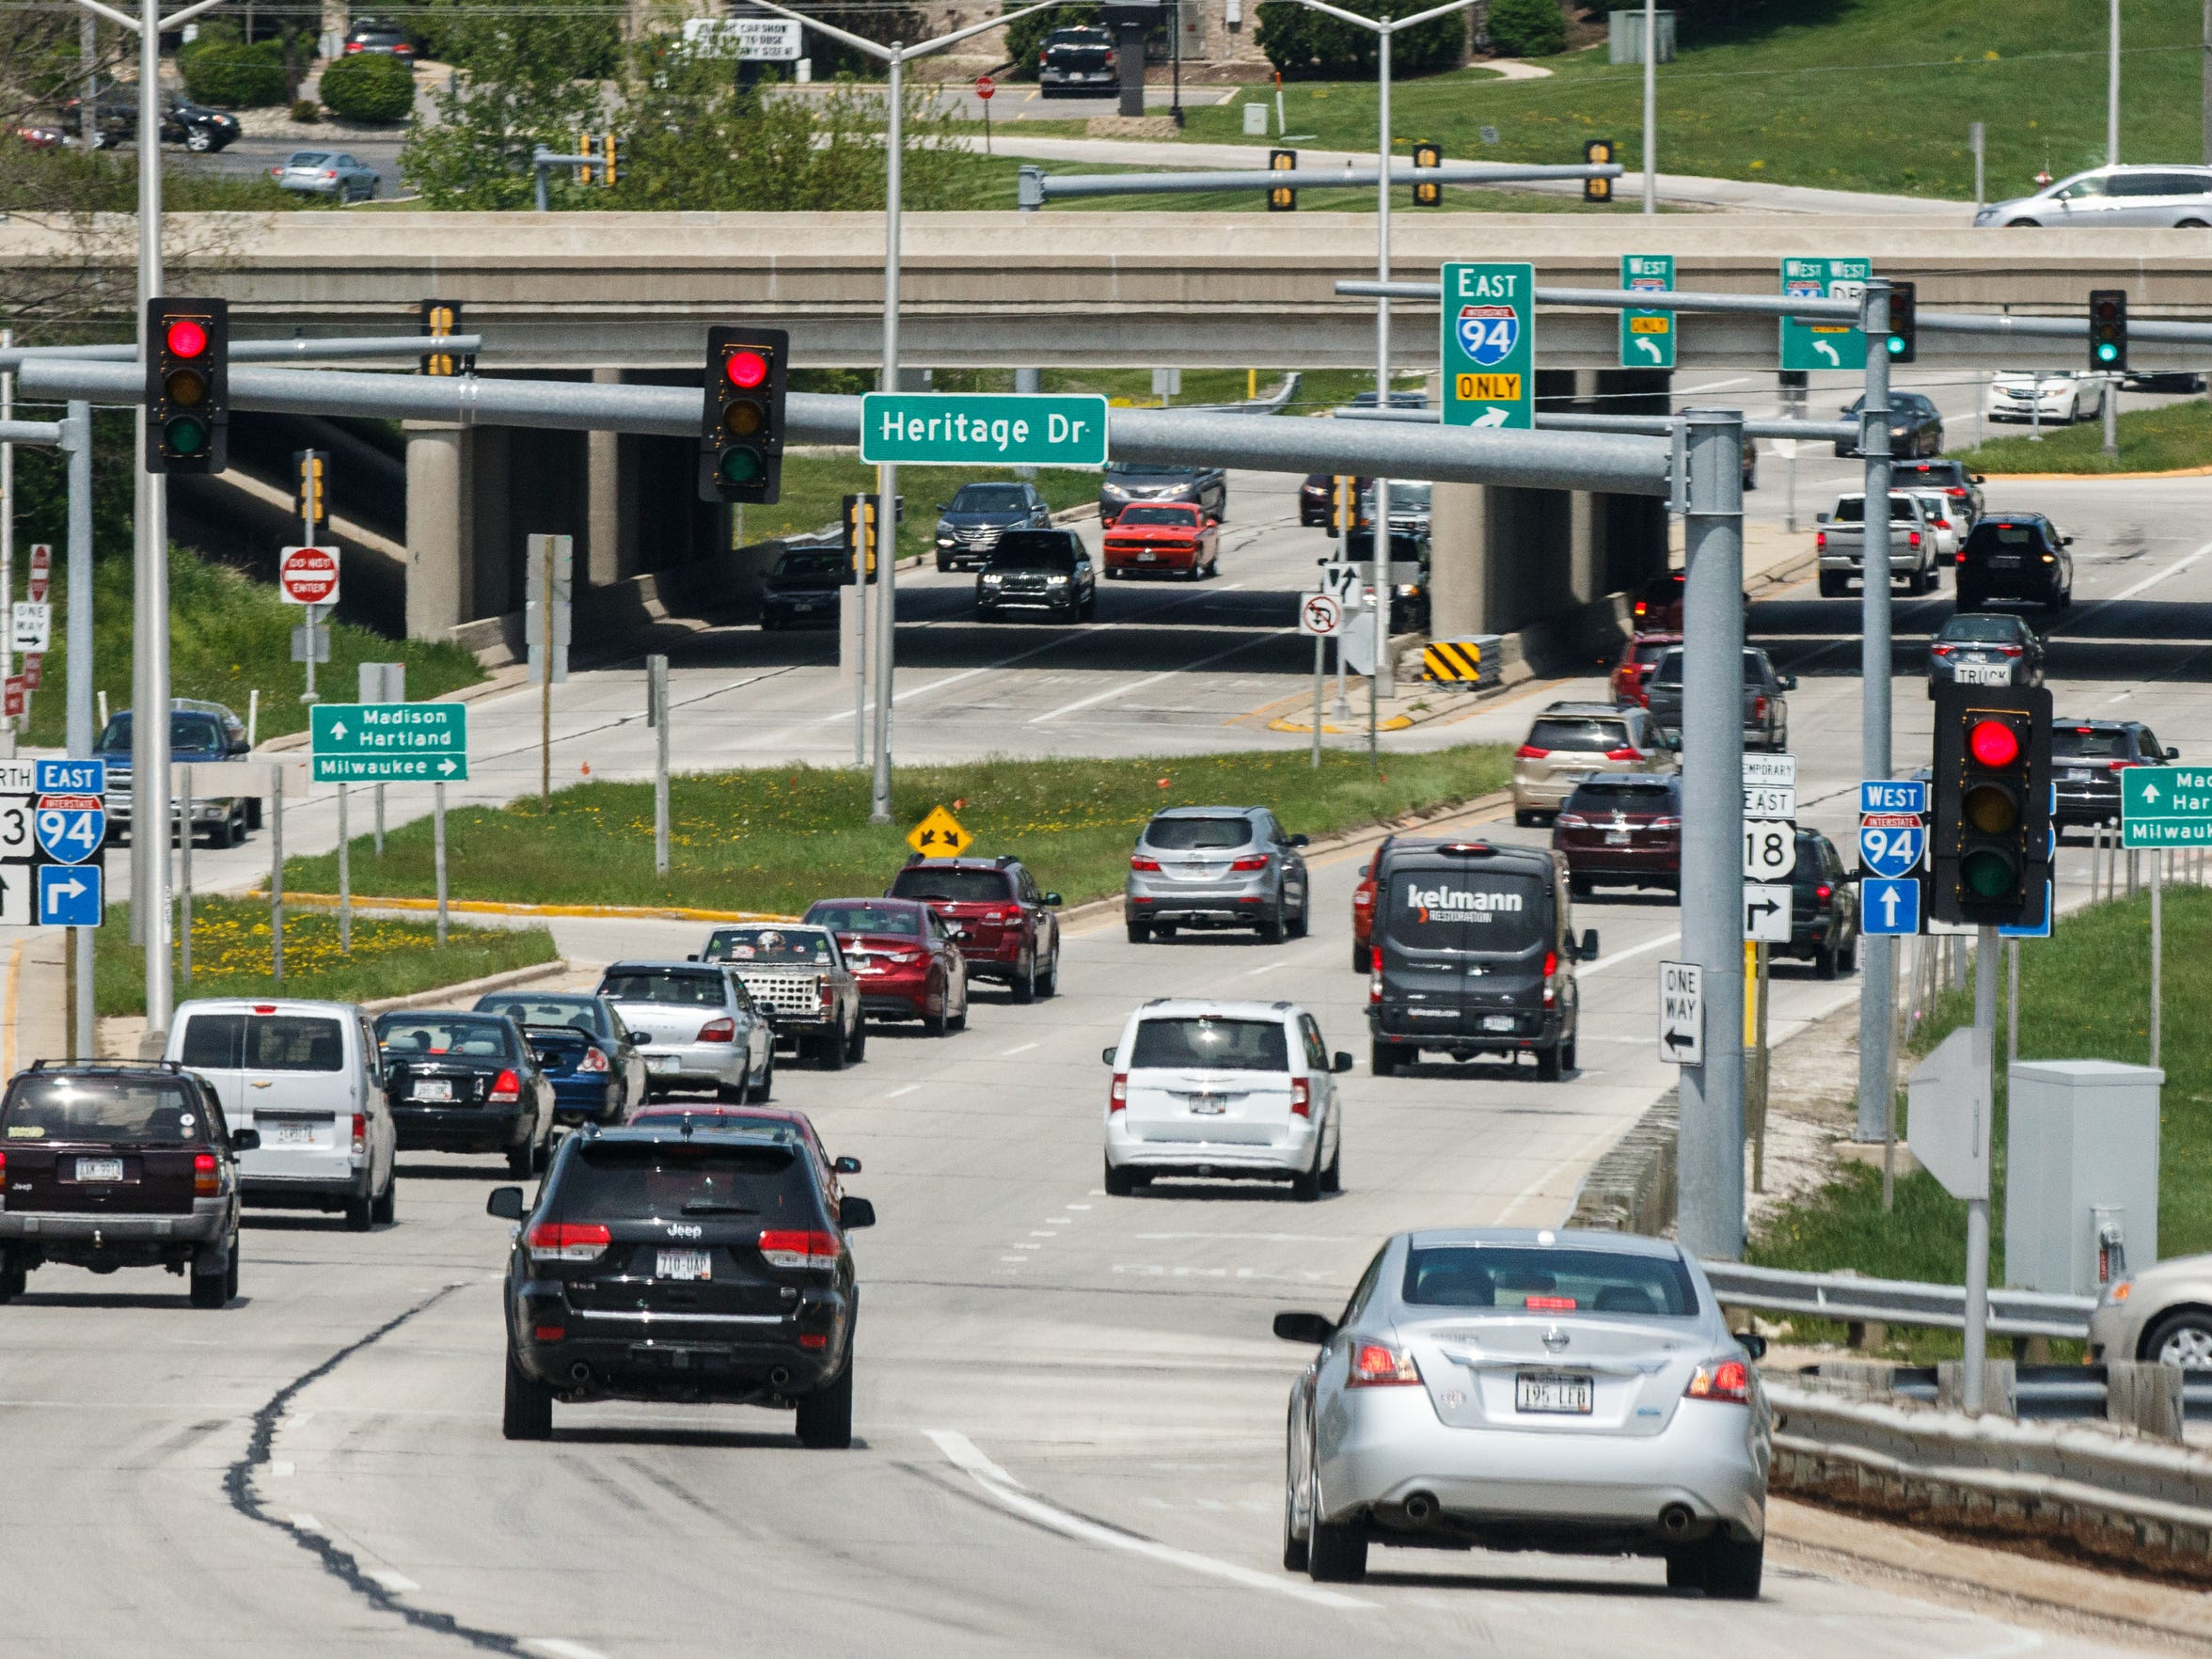 The intersection of Interstate 94 and Highway 83 in